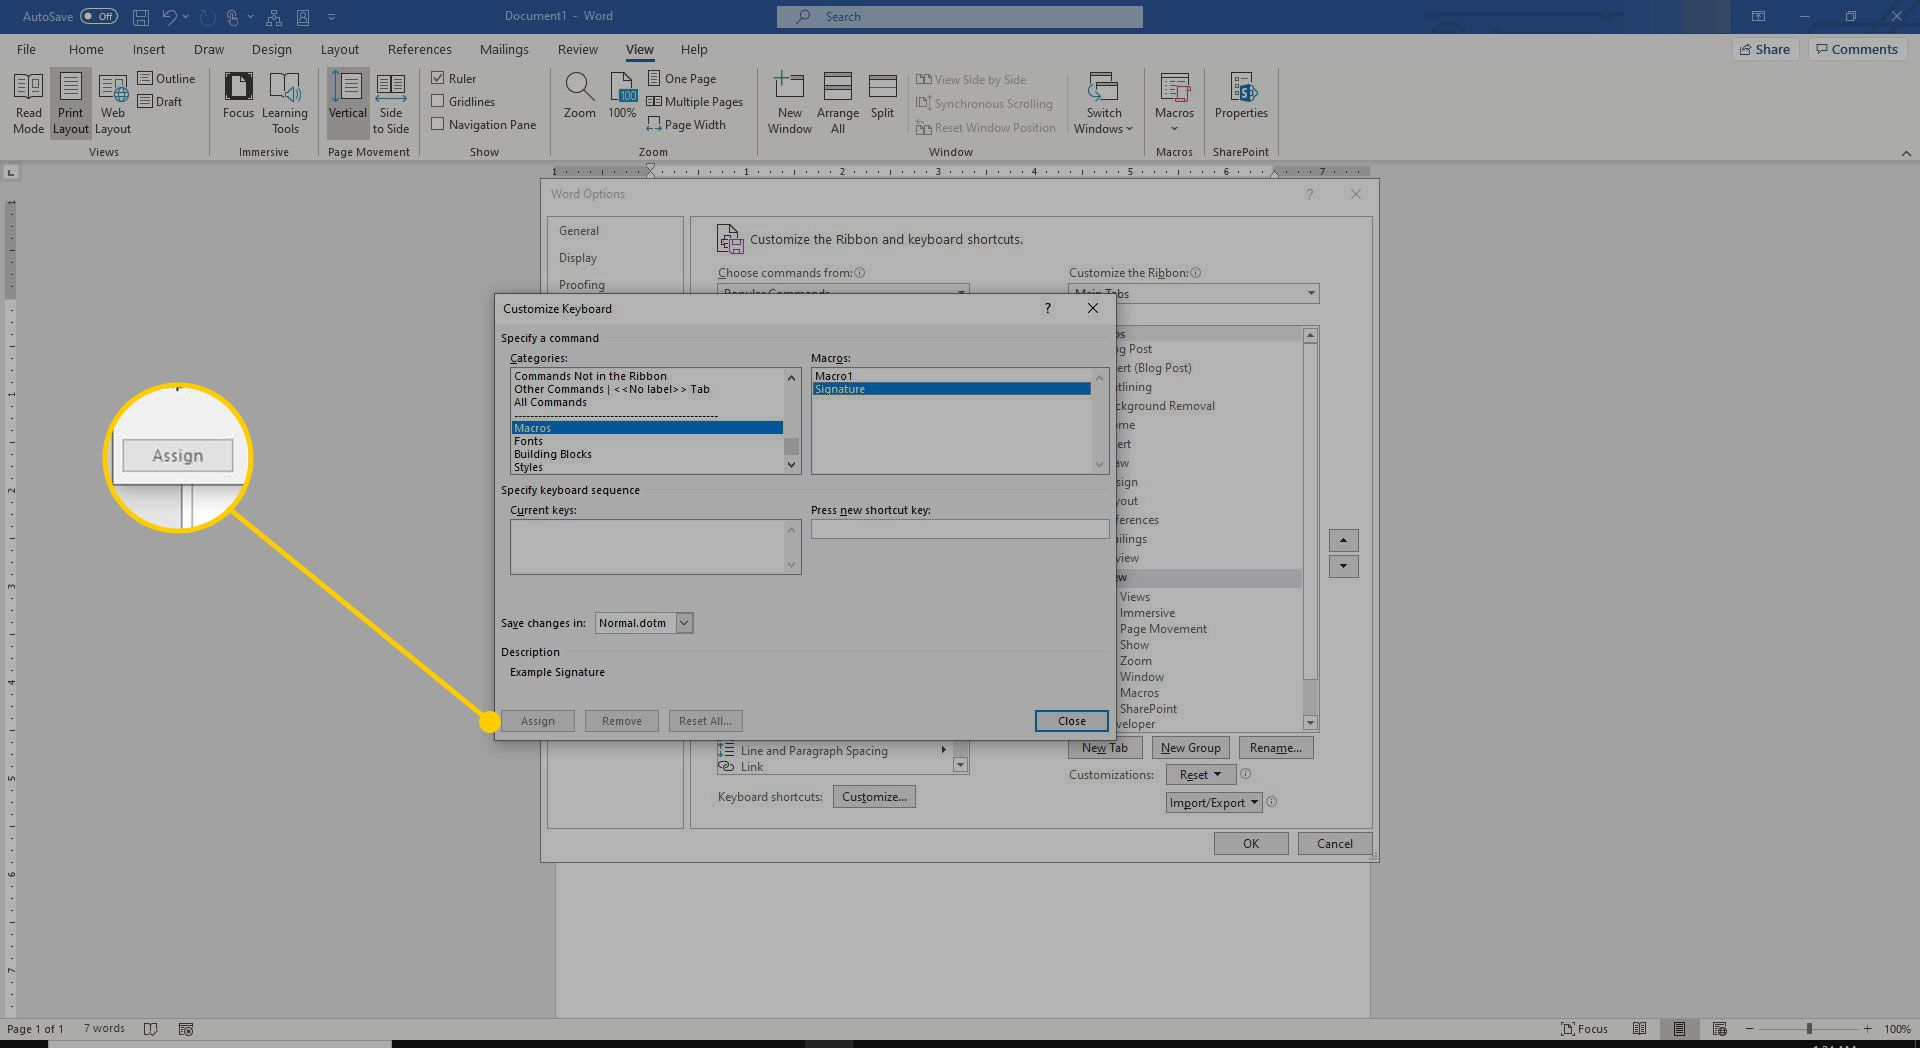 Assign button in Word macro settings